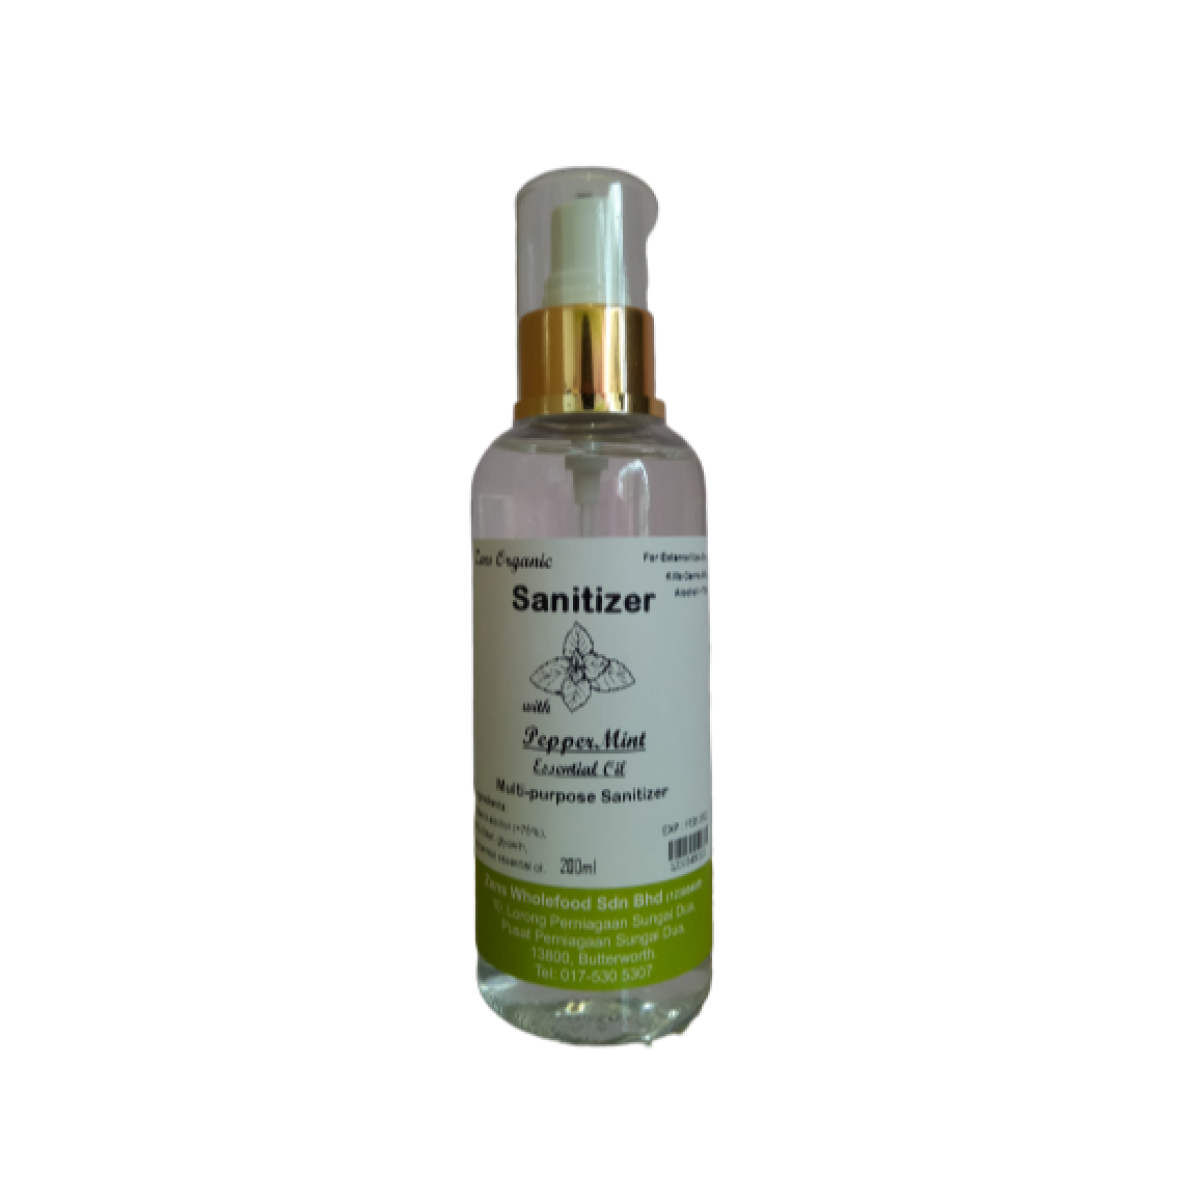 Zens Organic Multi-Purpose Sanitizer Spray with Peppermint Essential Oil 200ml ( Ethanol 75% above, contains glycerin, peppermint essential oil )